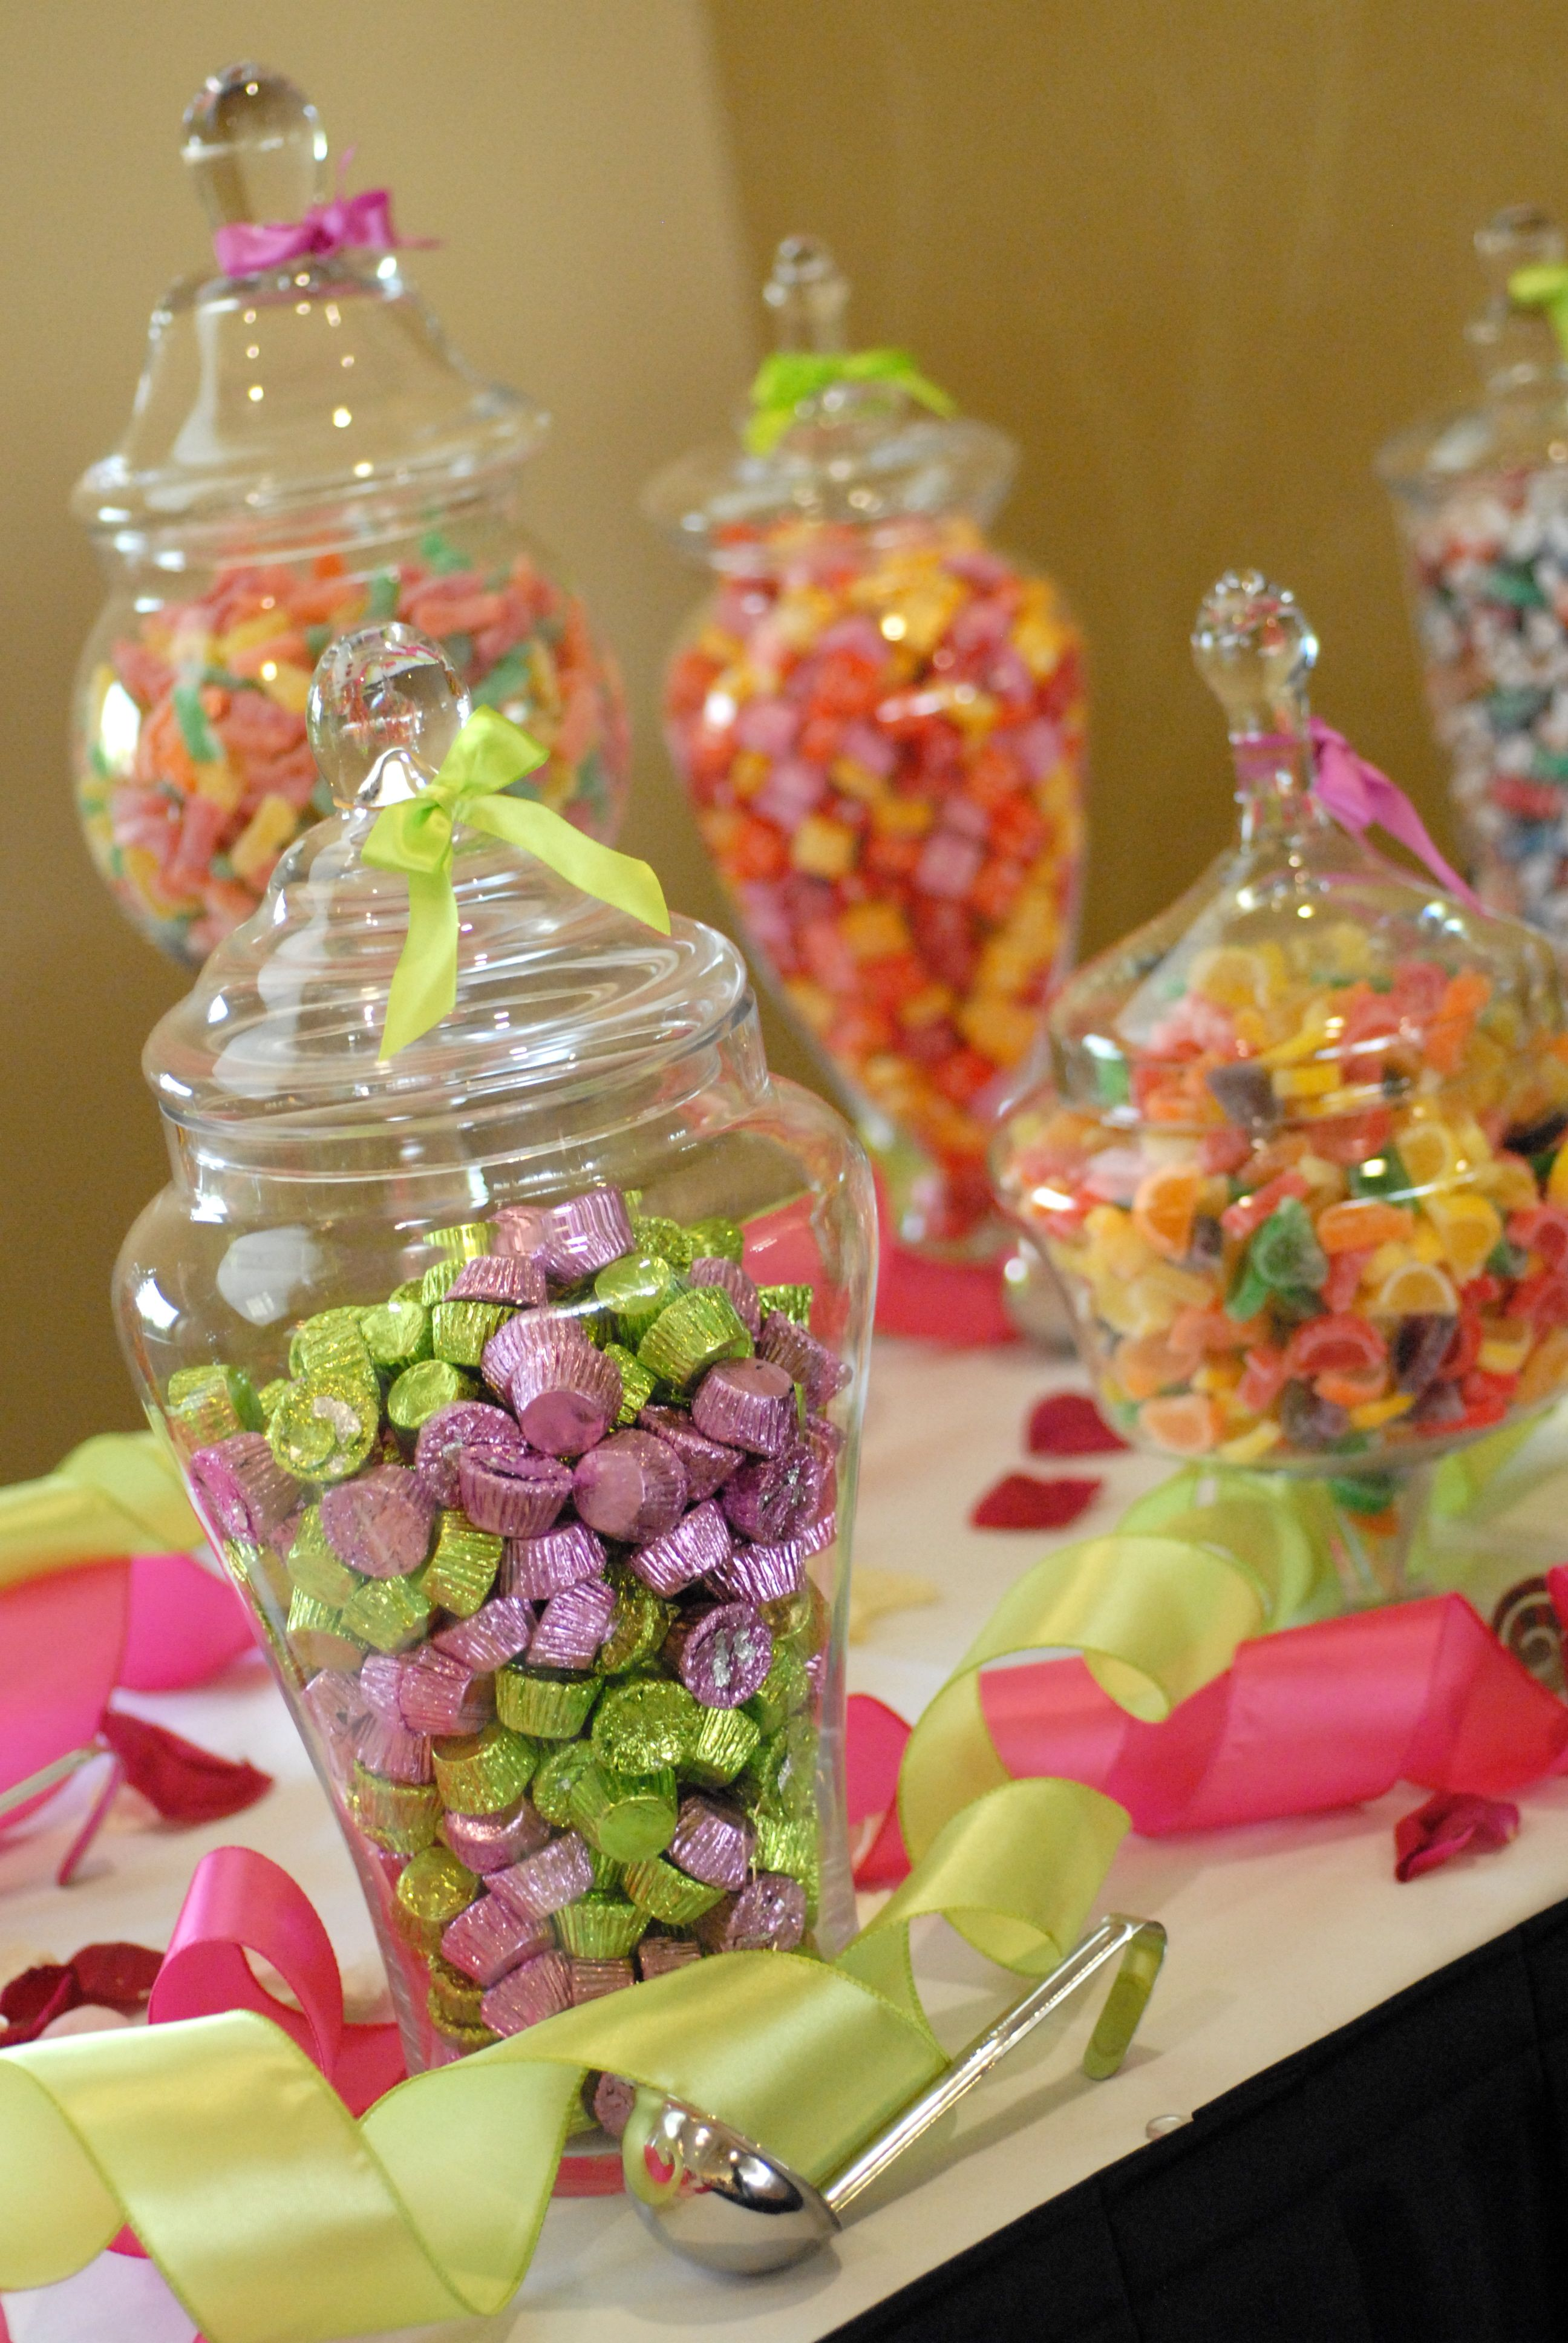 Sweet amp sparkly wedding candy buffet pictures to pin on pinterest - Candy Buffet